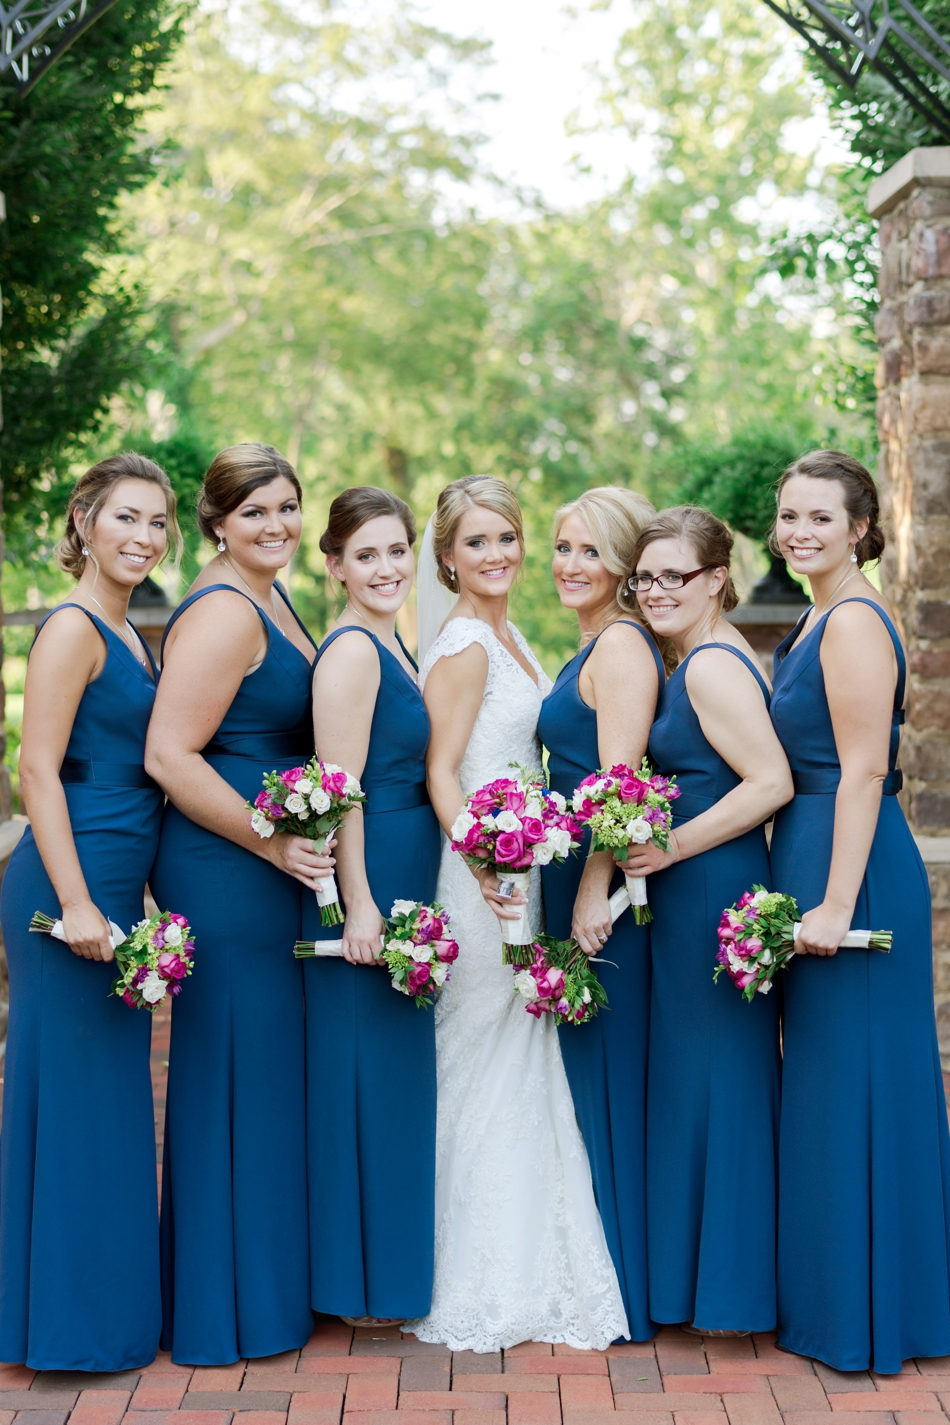 must have photos with bridesmaids